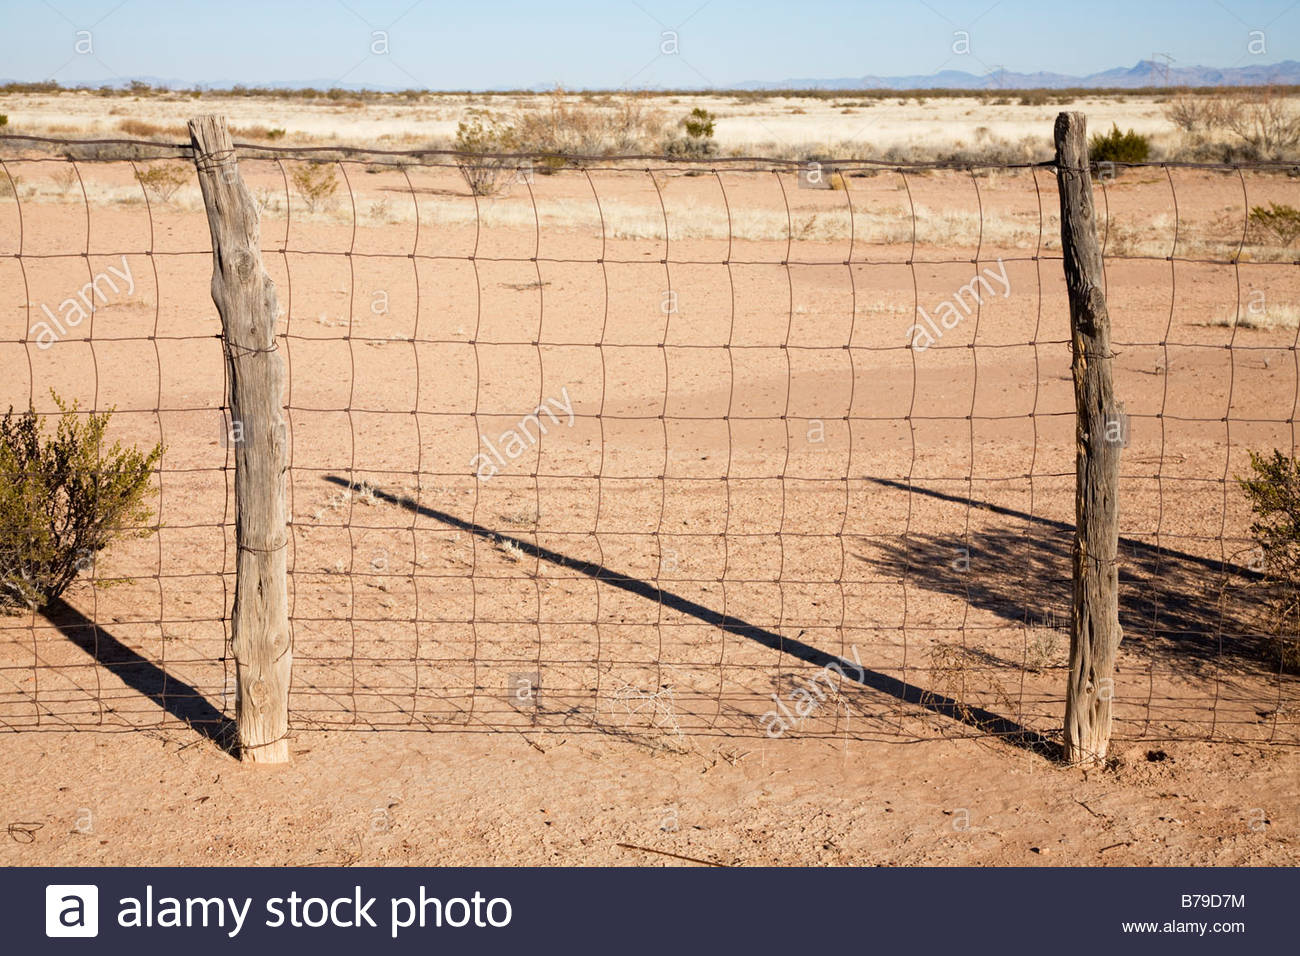 Rusty woven wire fence wooden posts - Stock Image